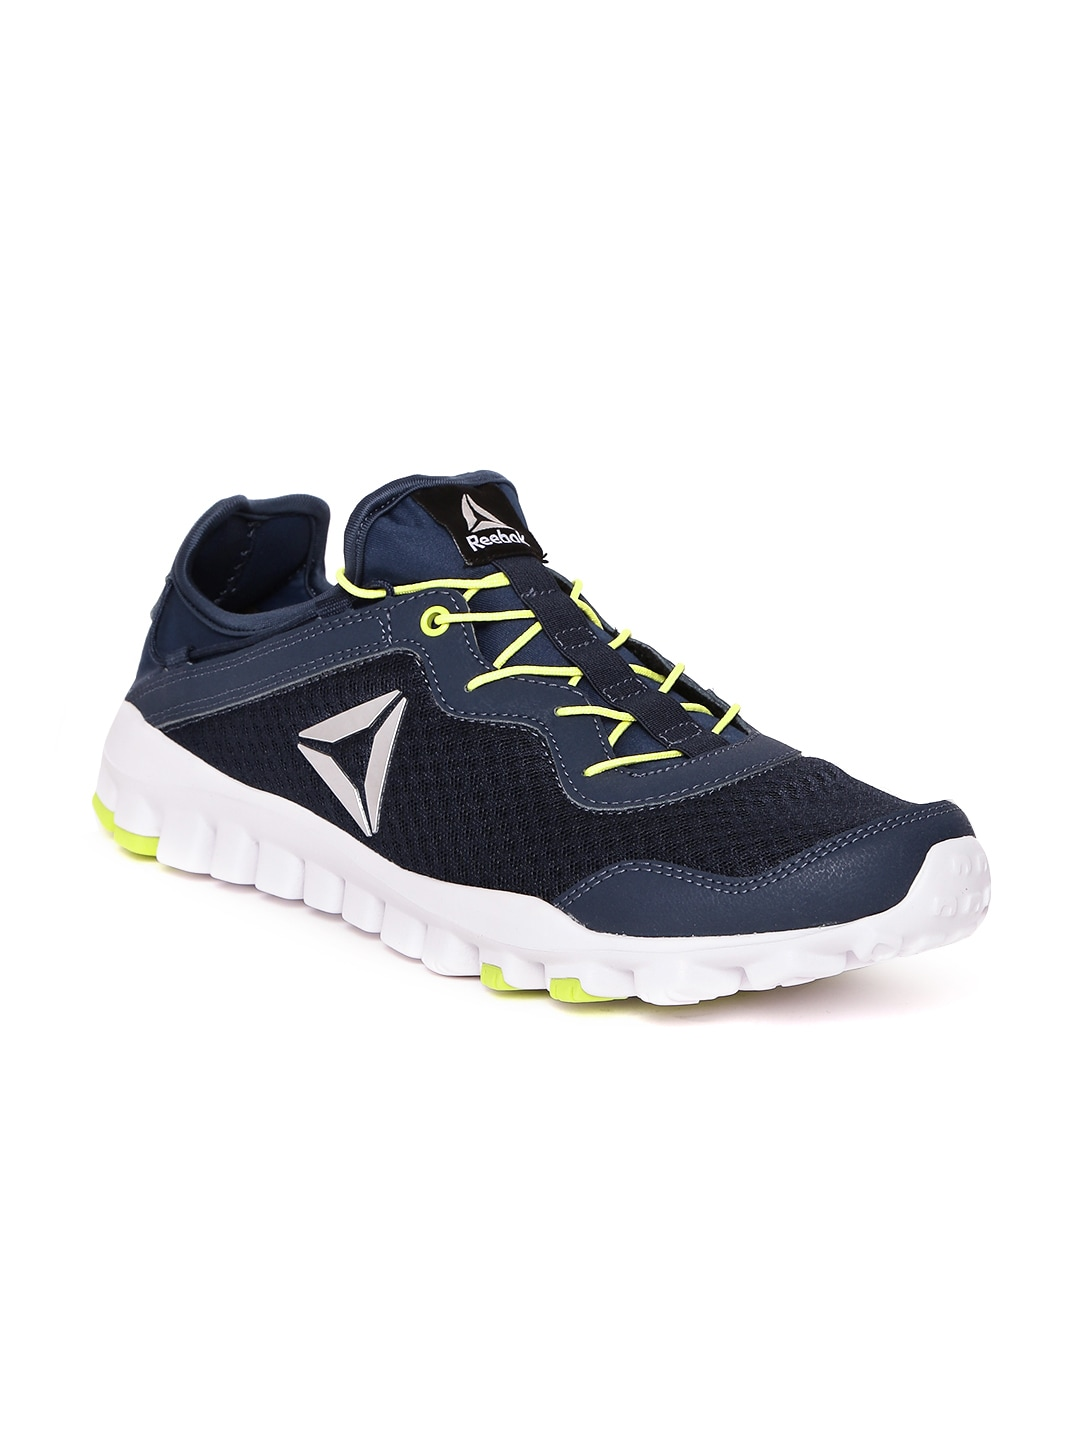 1fb7413ccdf6 Sports Shoes - Buy Sport Shoes For Men   Women Online